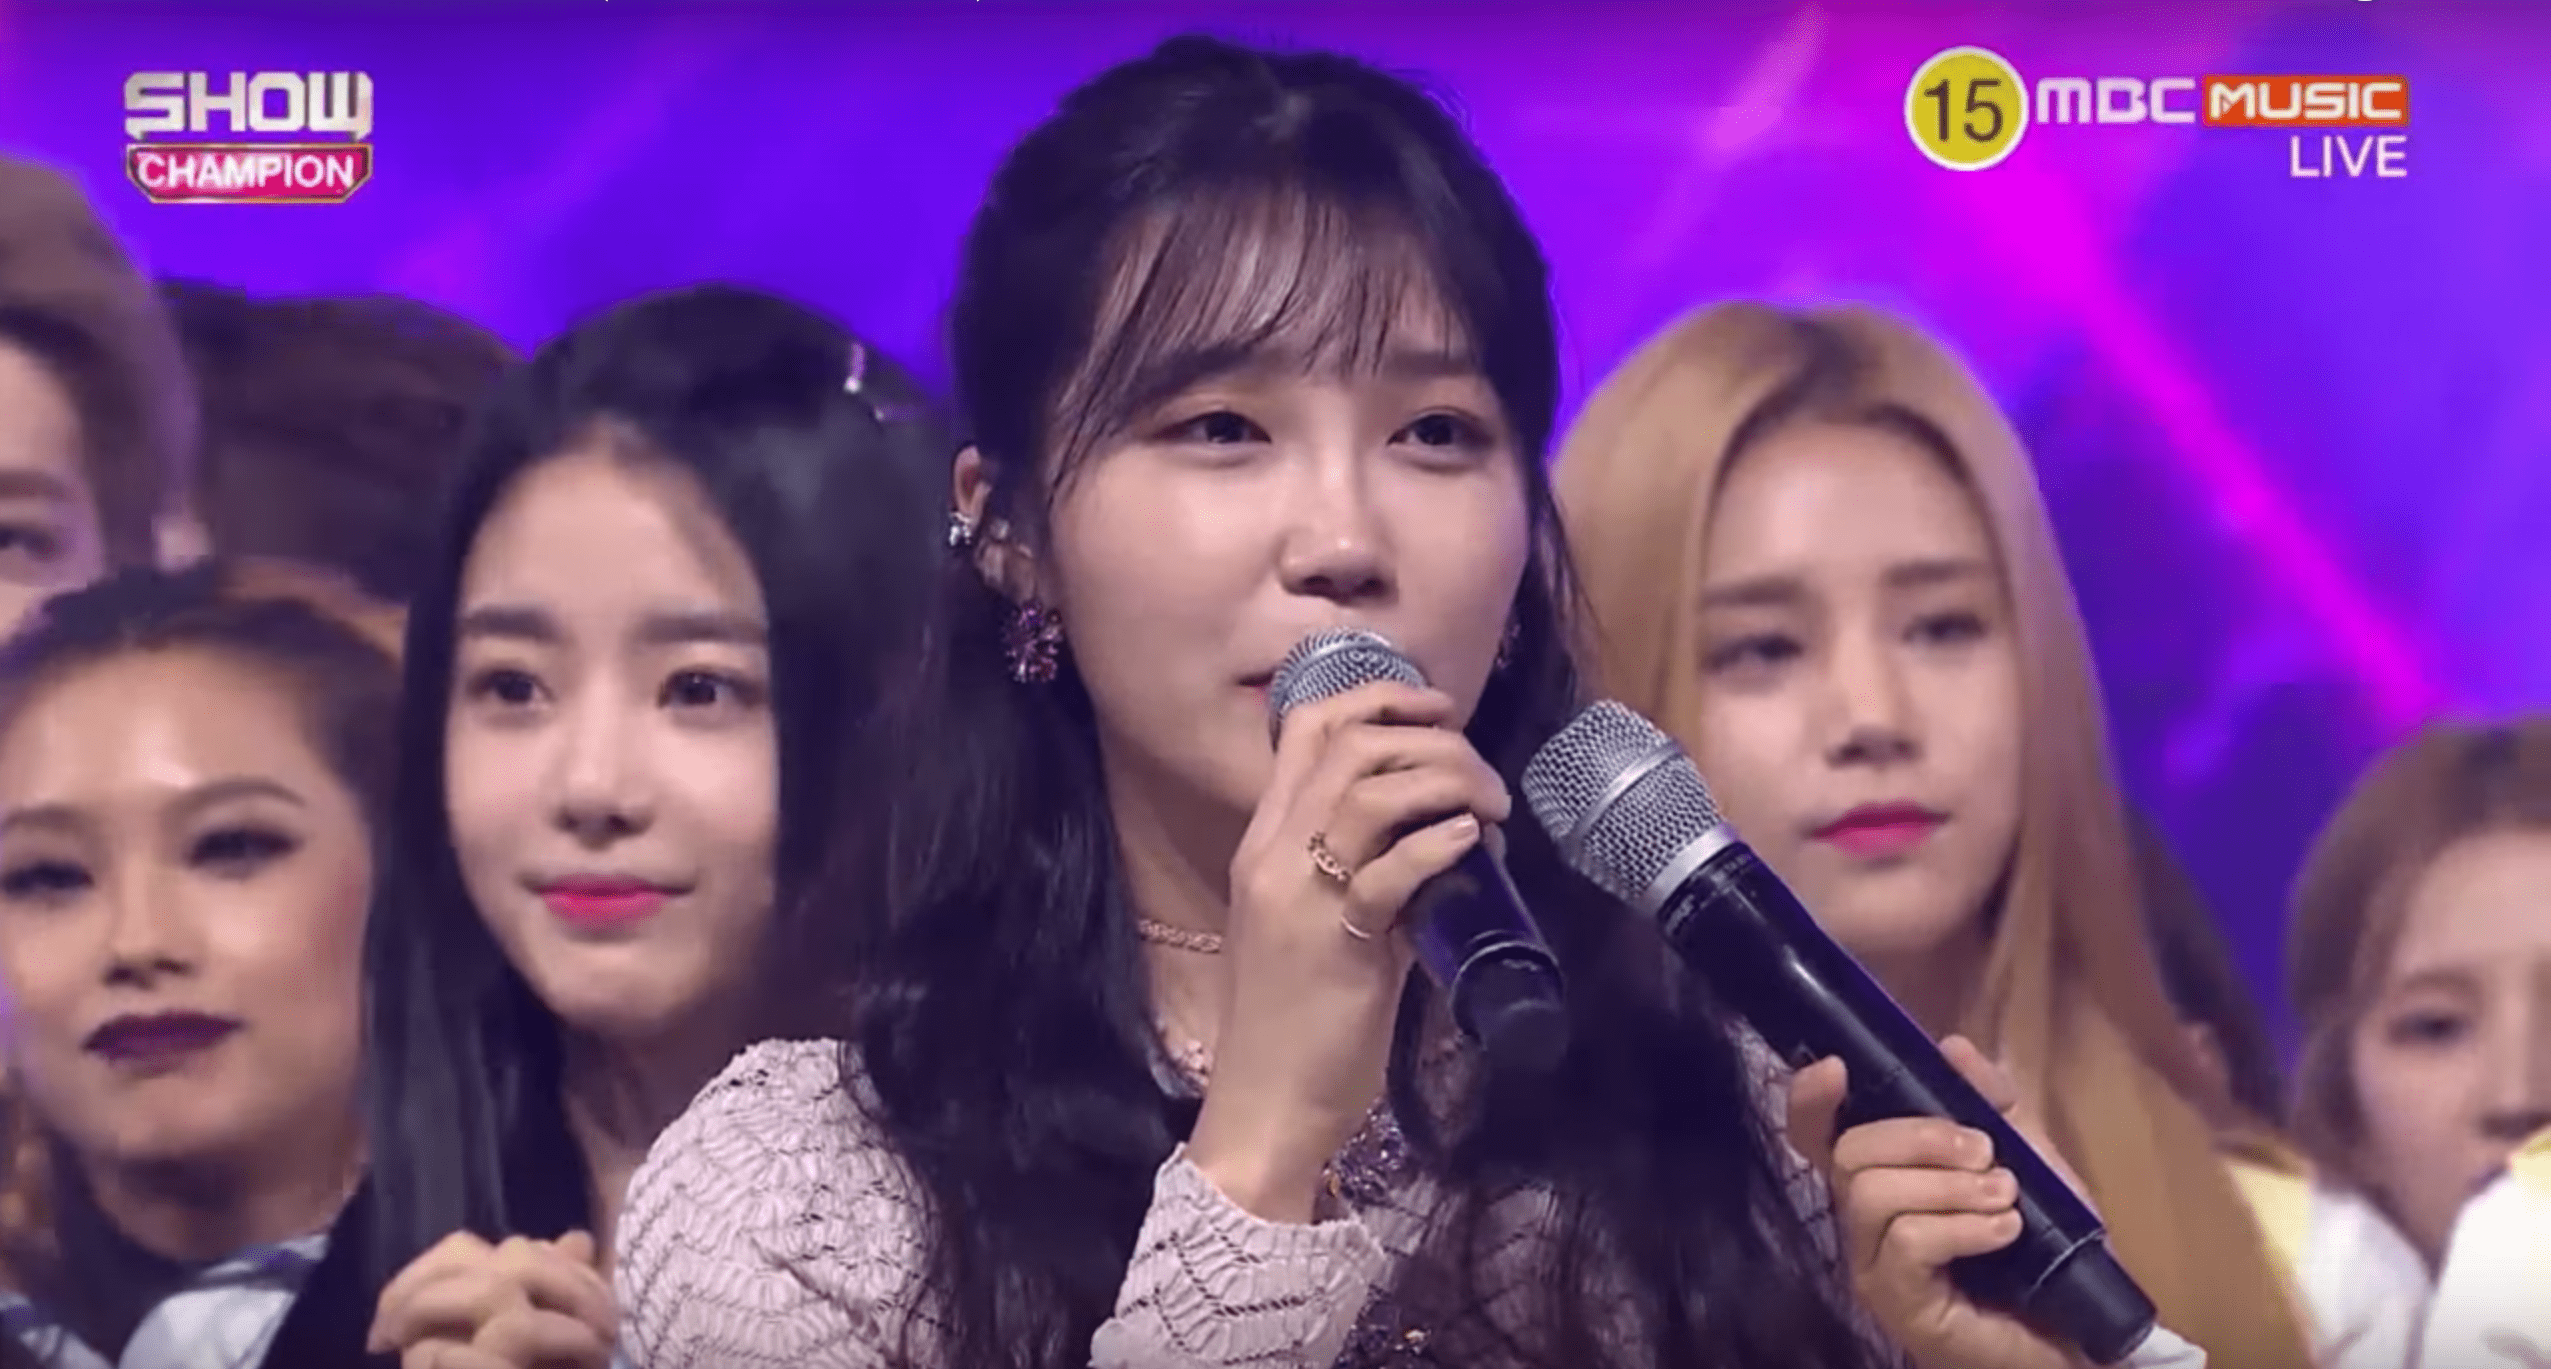 """Watch: Jung Eun Ji Takes 2nd Win For """"The Spring"""" On """"Show Champion,"""" Performances By Gong Minzy, EXID, LABOUM, And More"""